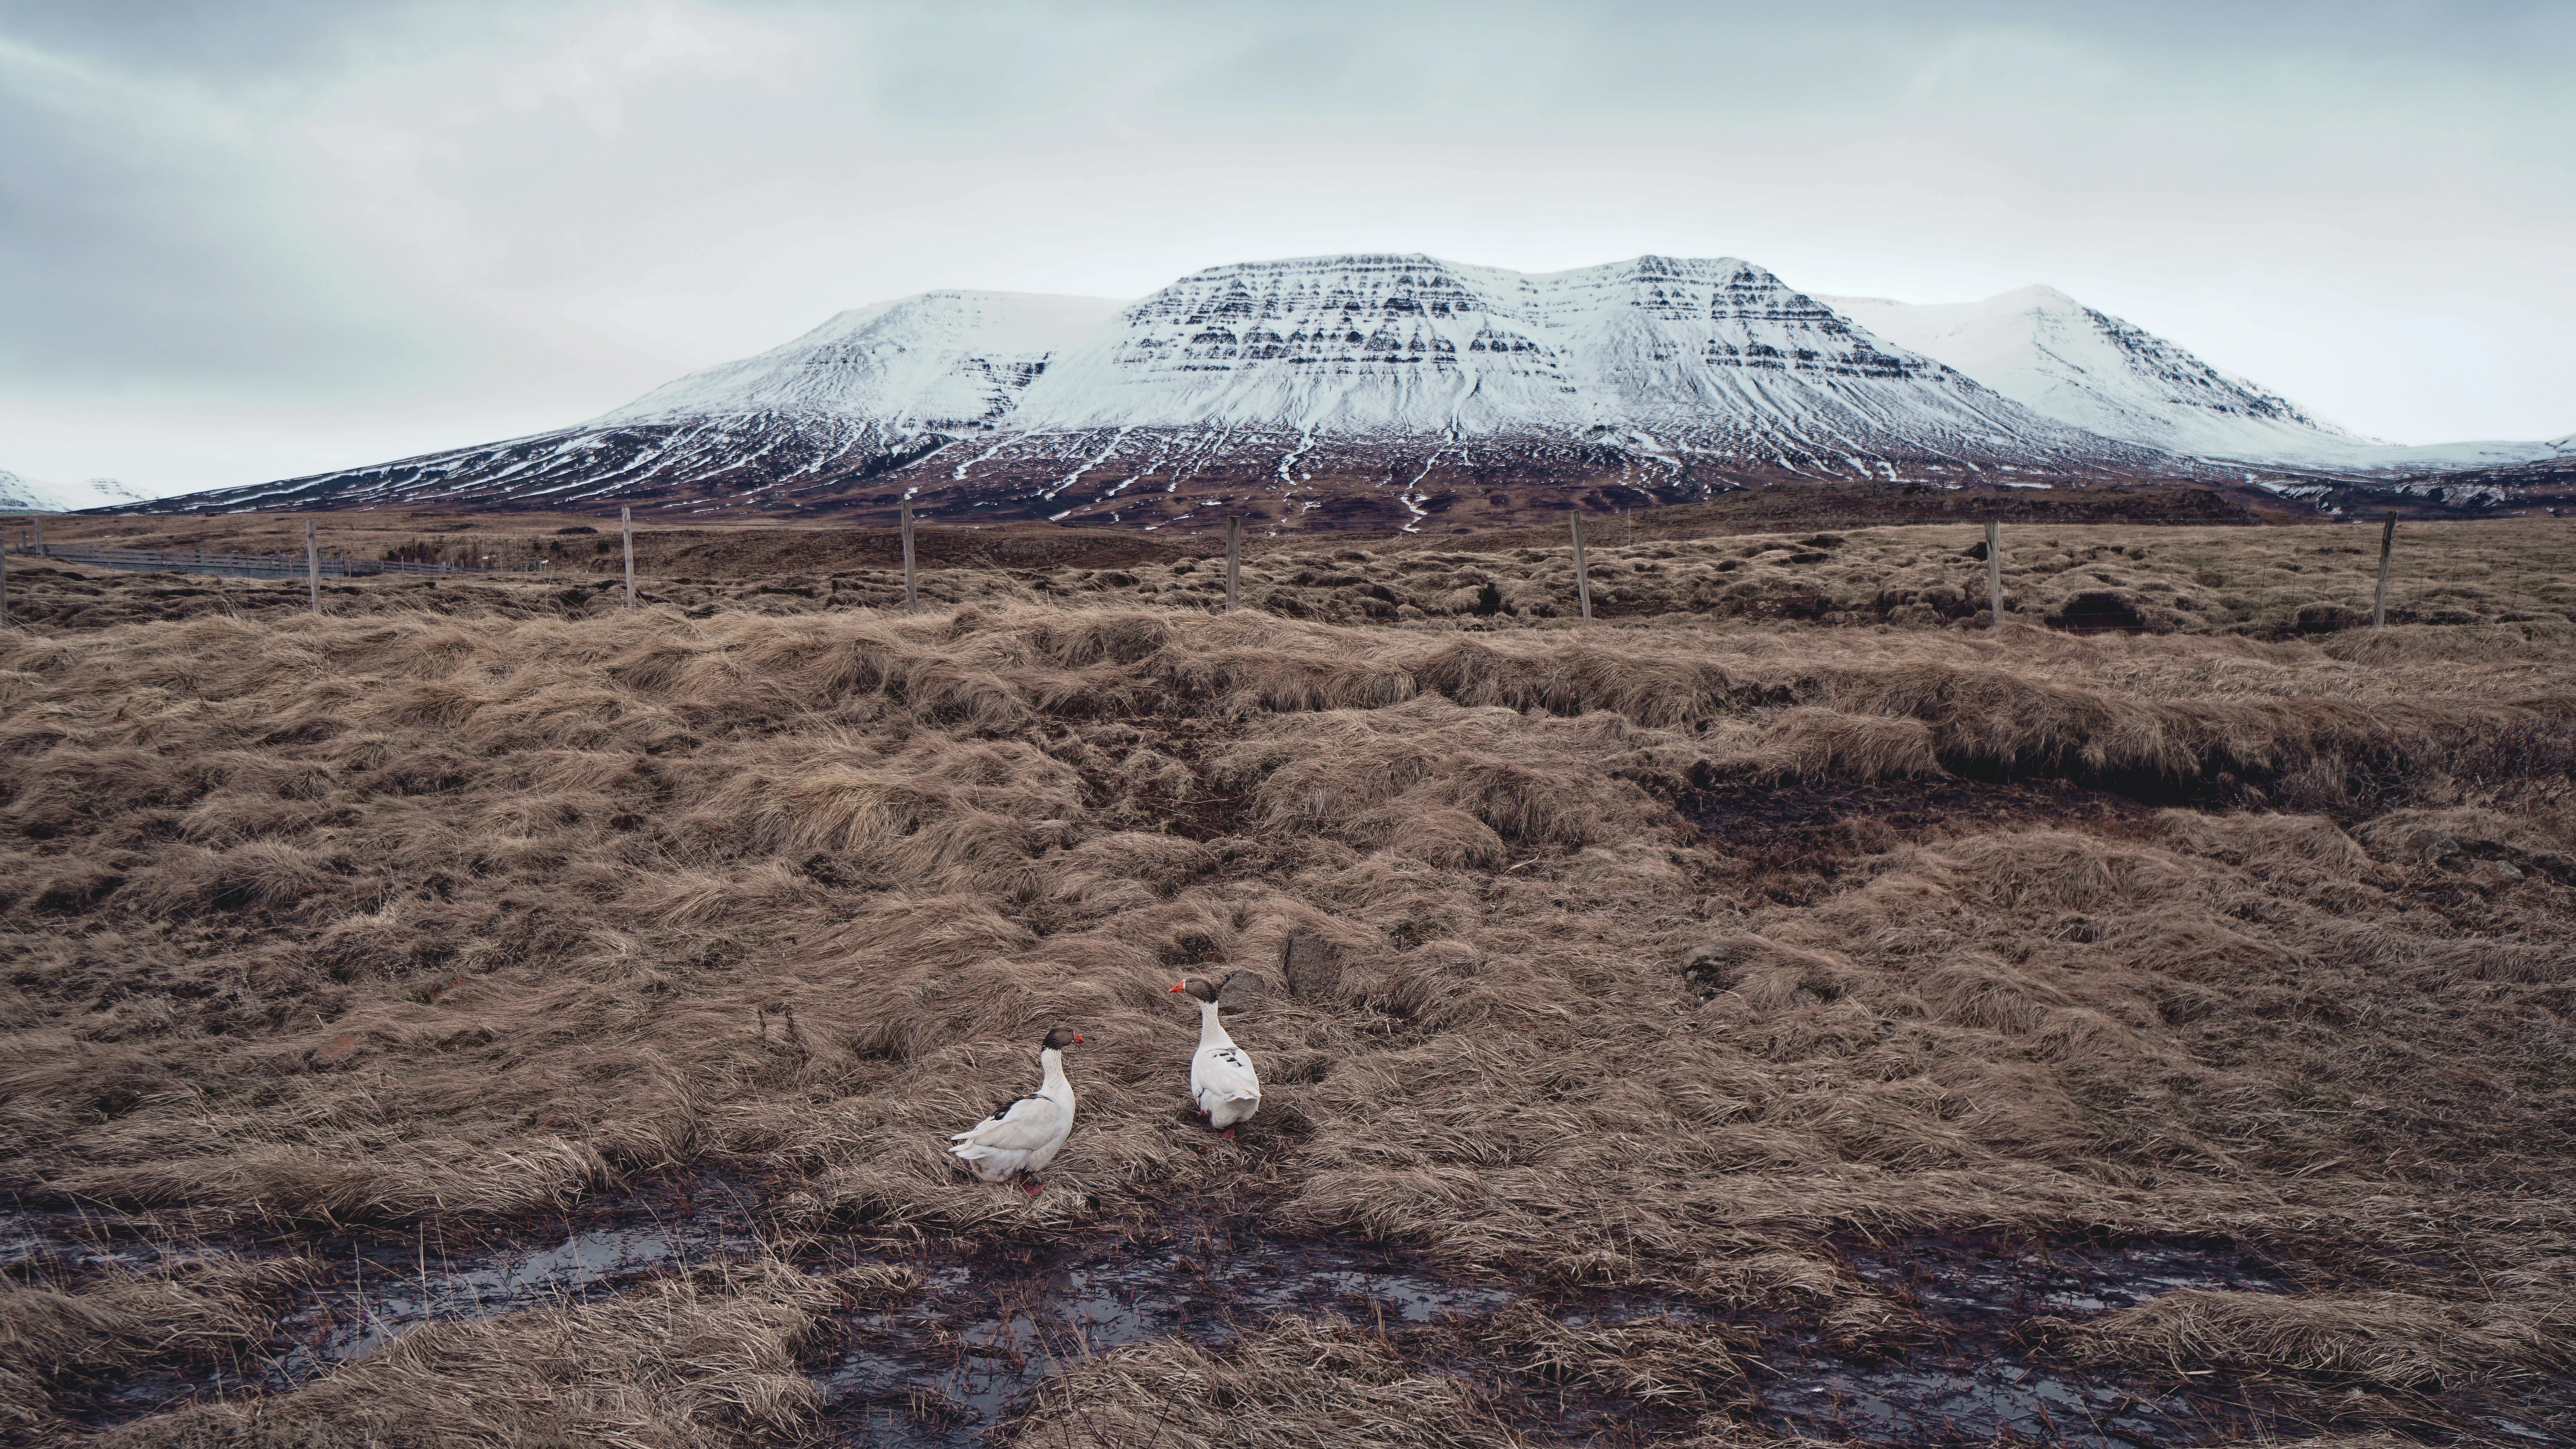 Two ducks in an enclosure near snowy table-top mountains in Iceland